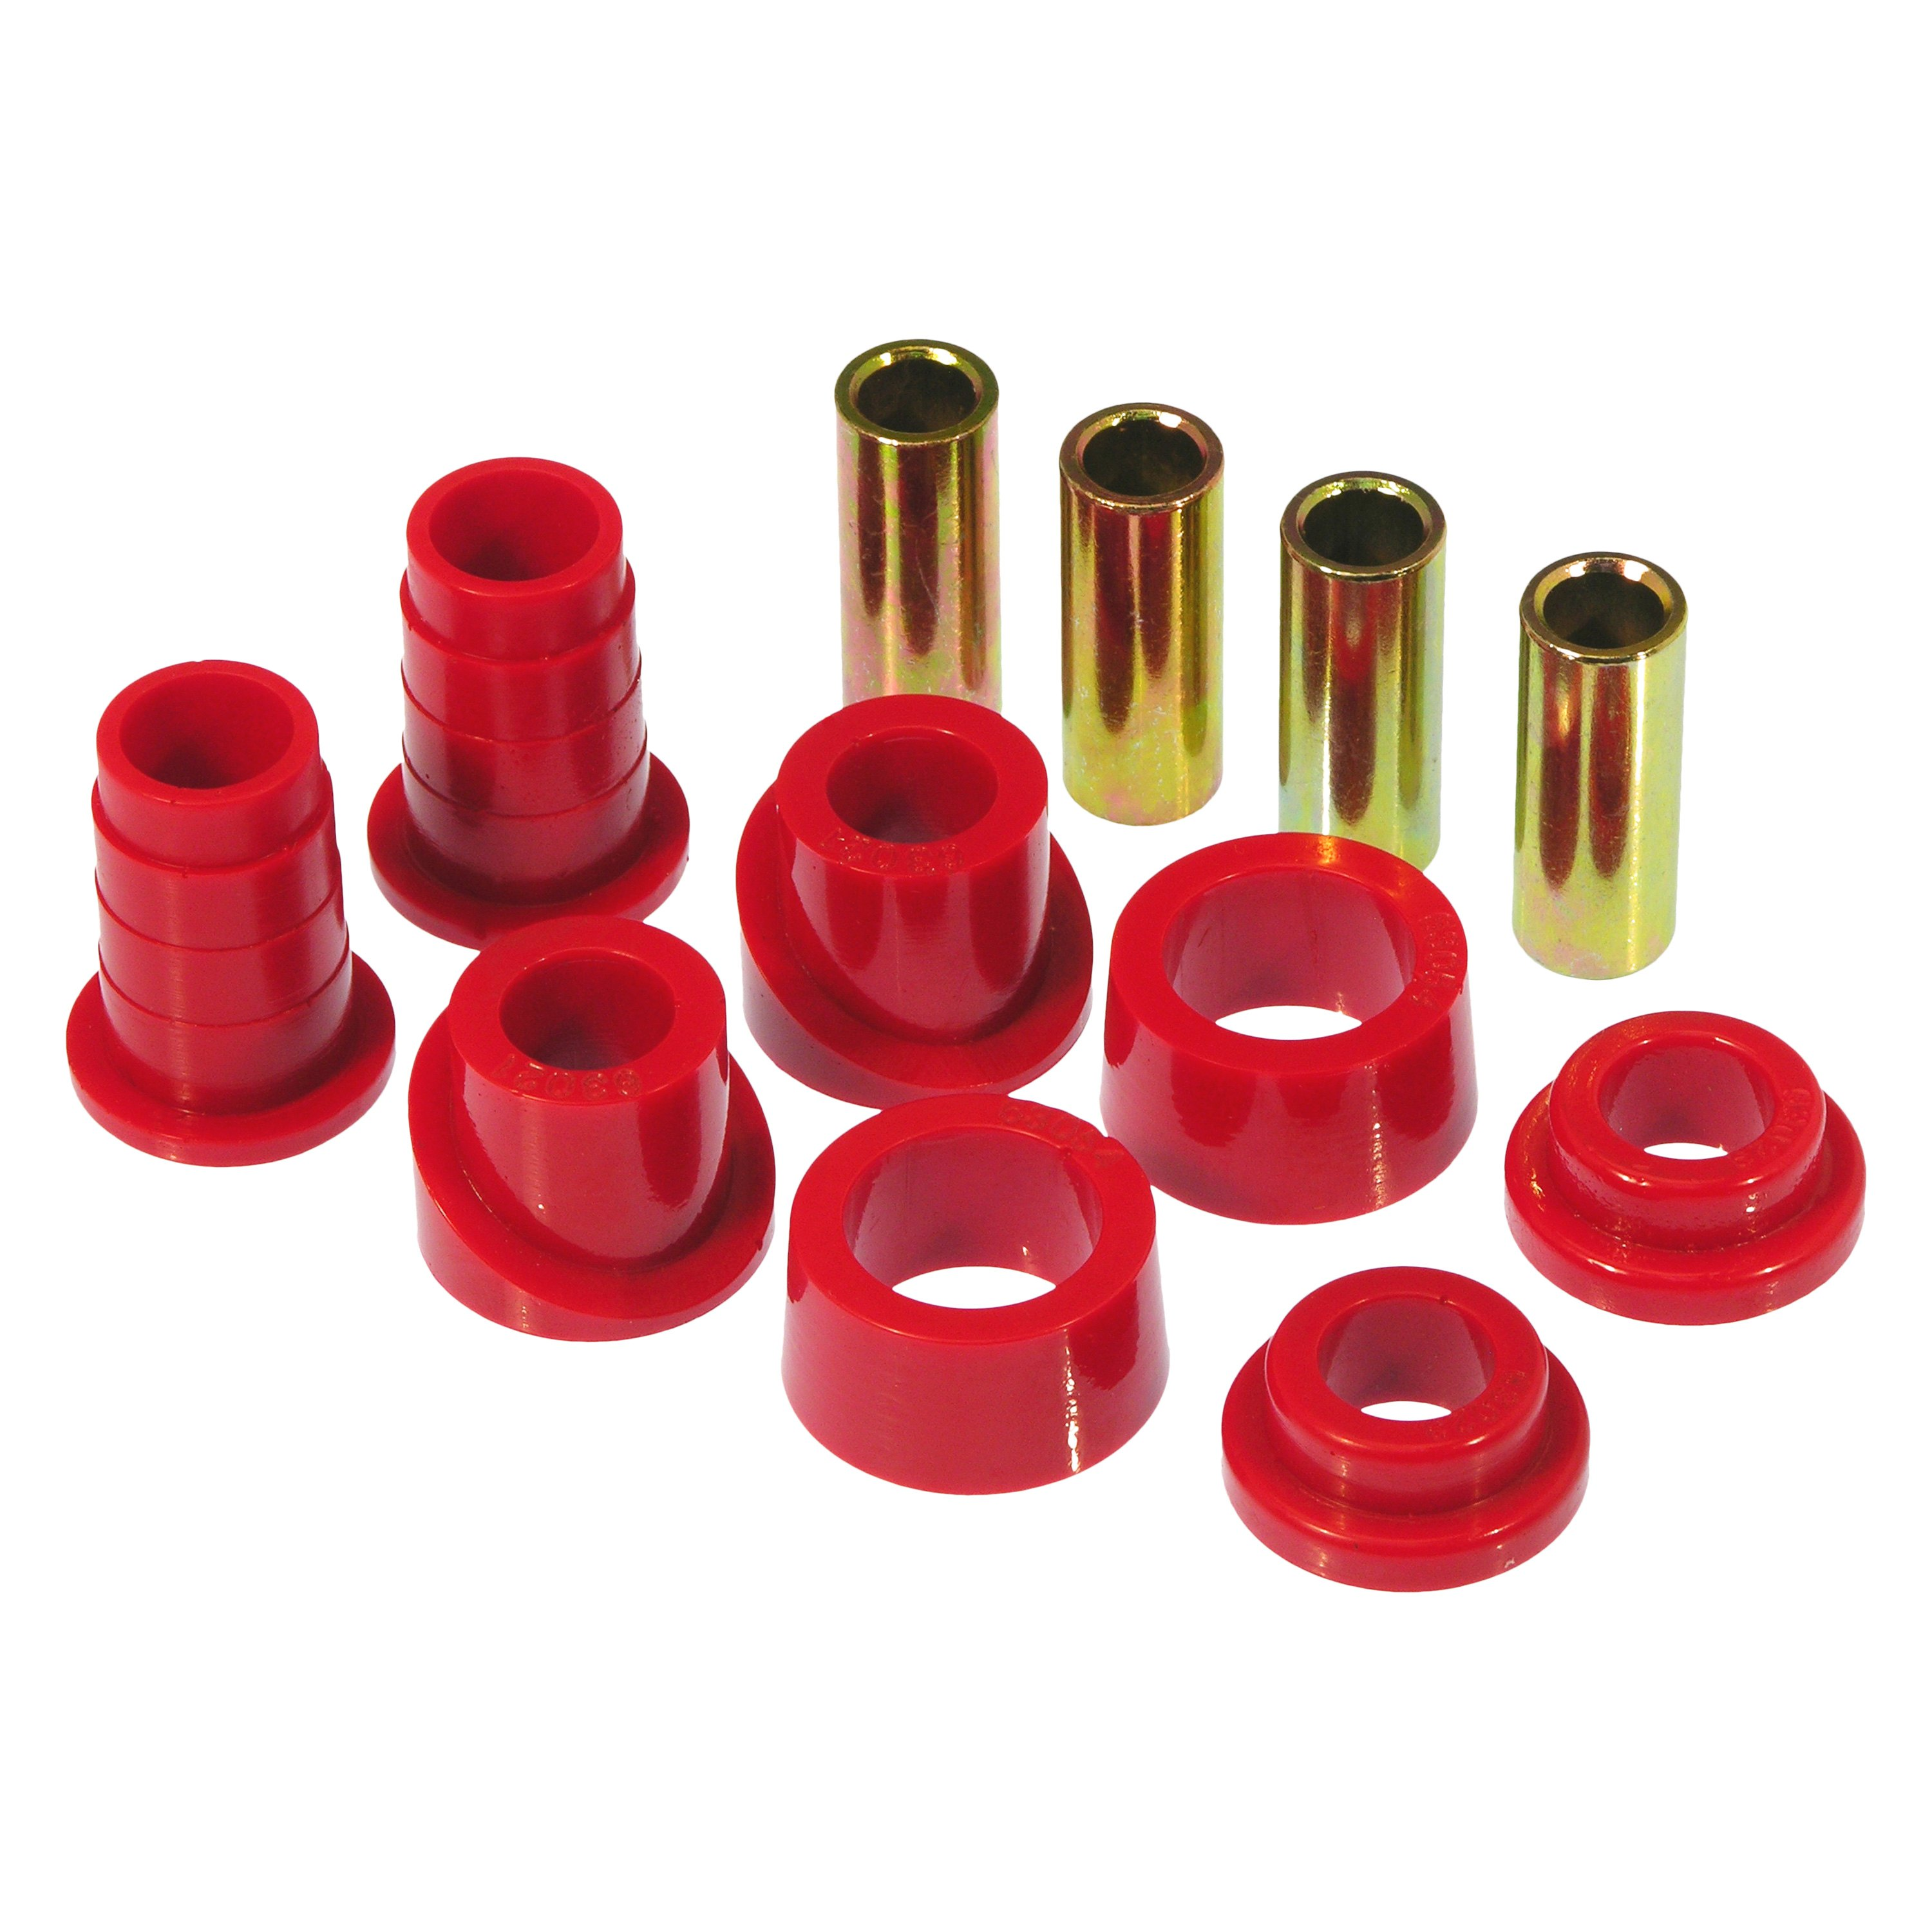 Prothane 7-401 Red Rear Sway Bar End Link Kit